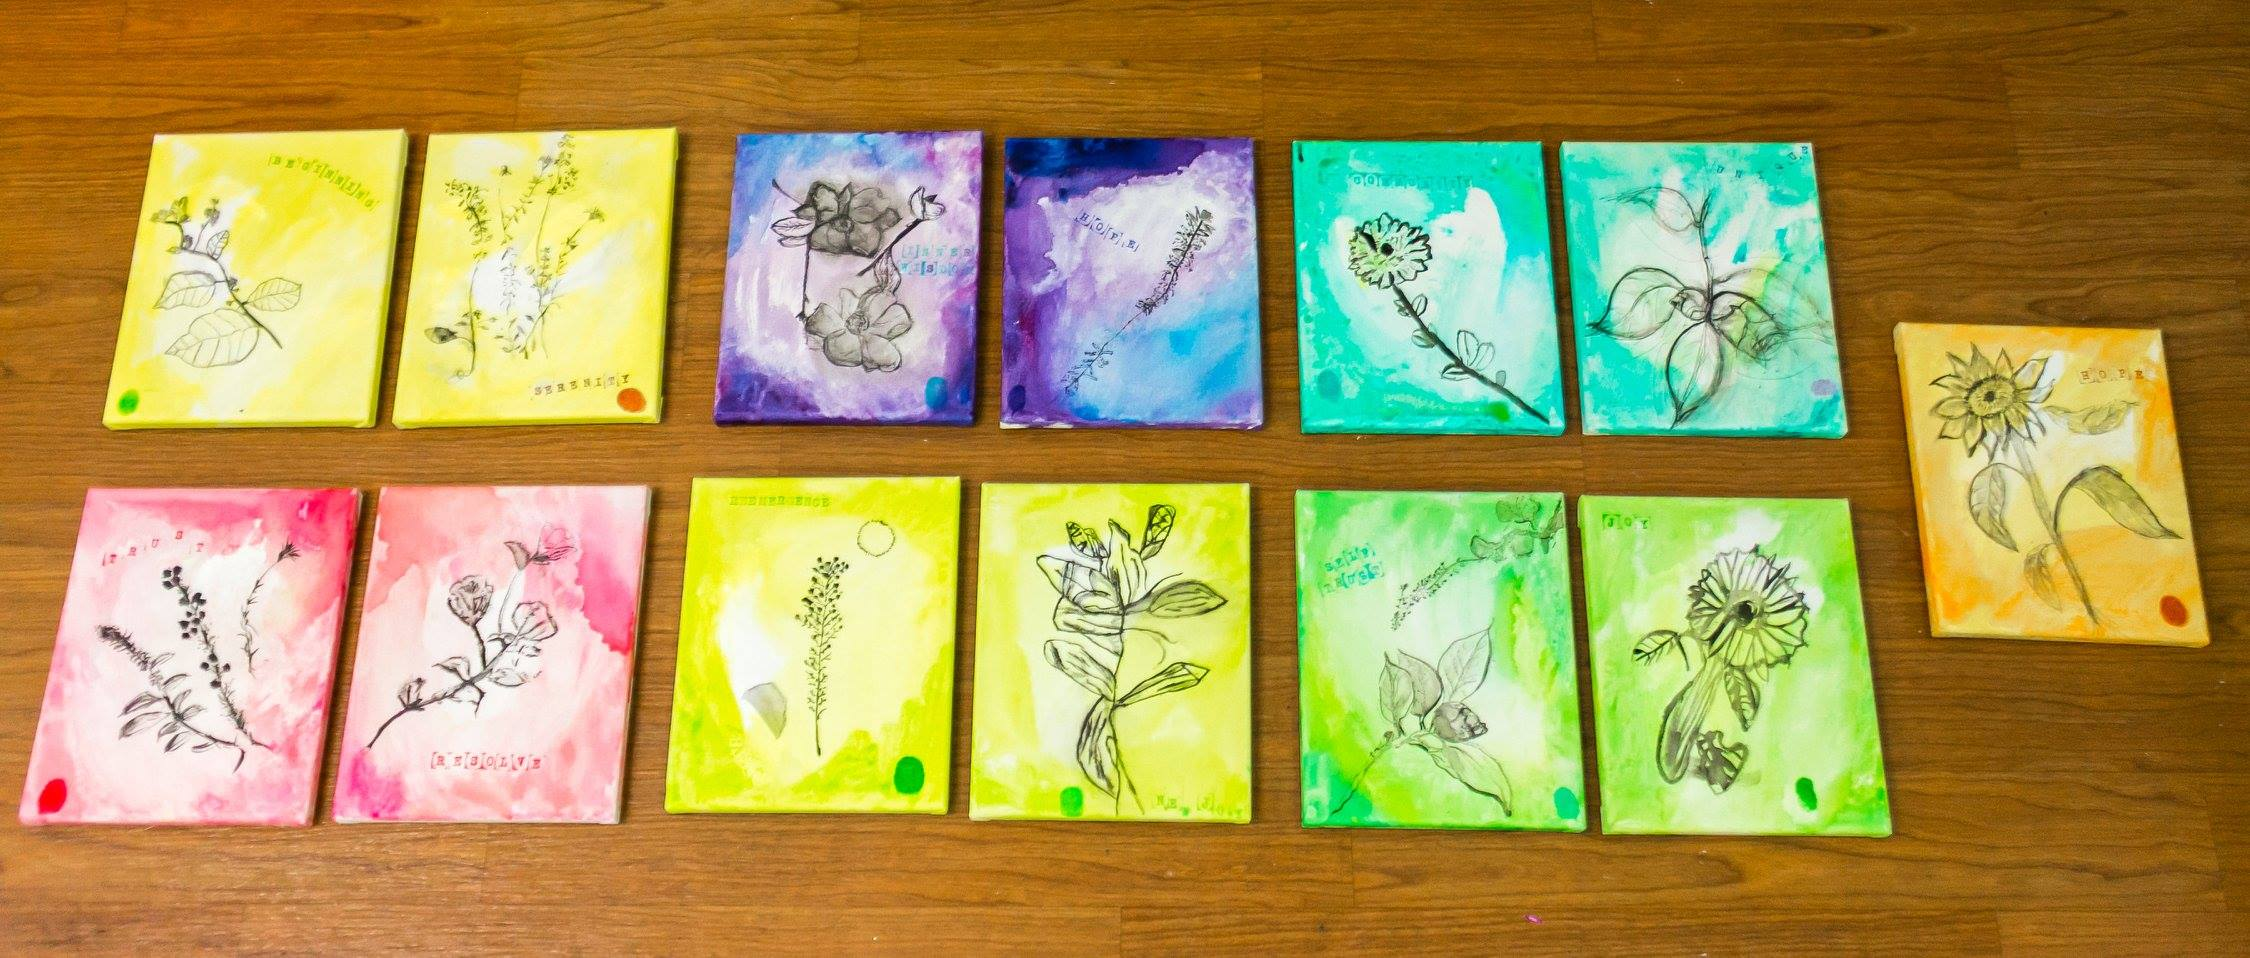 Paintings made by volunteers in the creative painting workshop facilitated by painter Yaeli Ohana